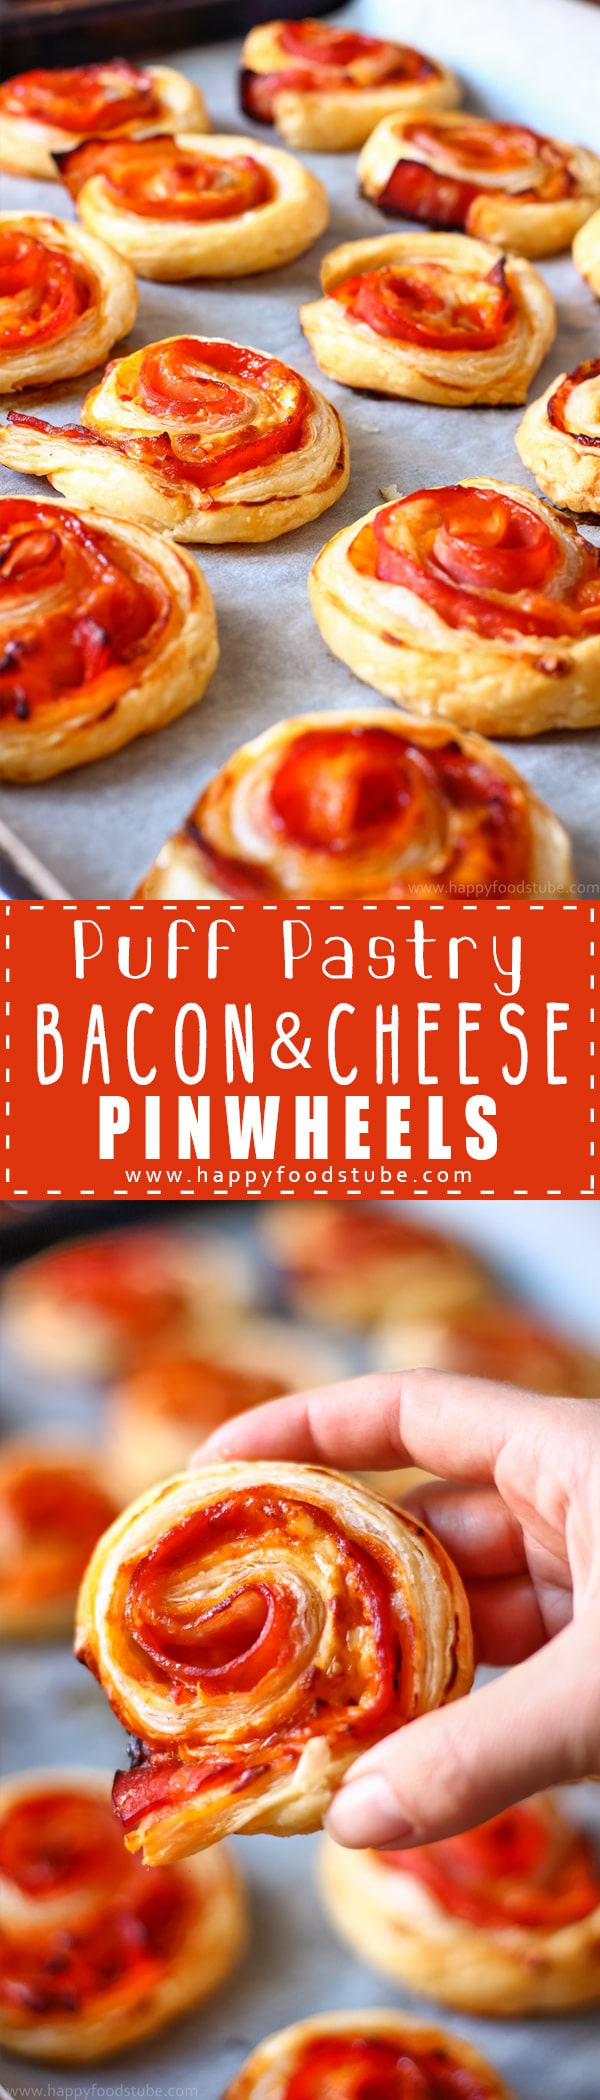 Puff Pastry Bacon Pinwheels with Cheddar ~ Easy and fast Puff Pastry Bacon Pinwheels with Cheddar Cheese. Homemade party food ideas. Perfect for parties and family gatherings. Only 5 ingredient and ready in 25 minutes